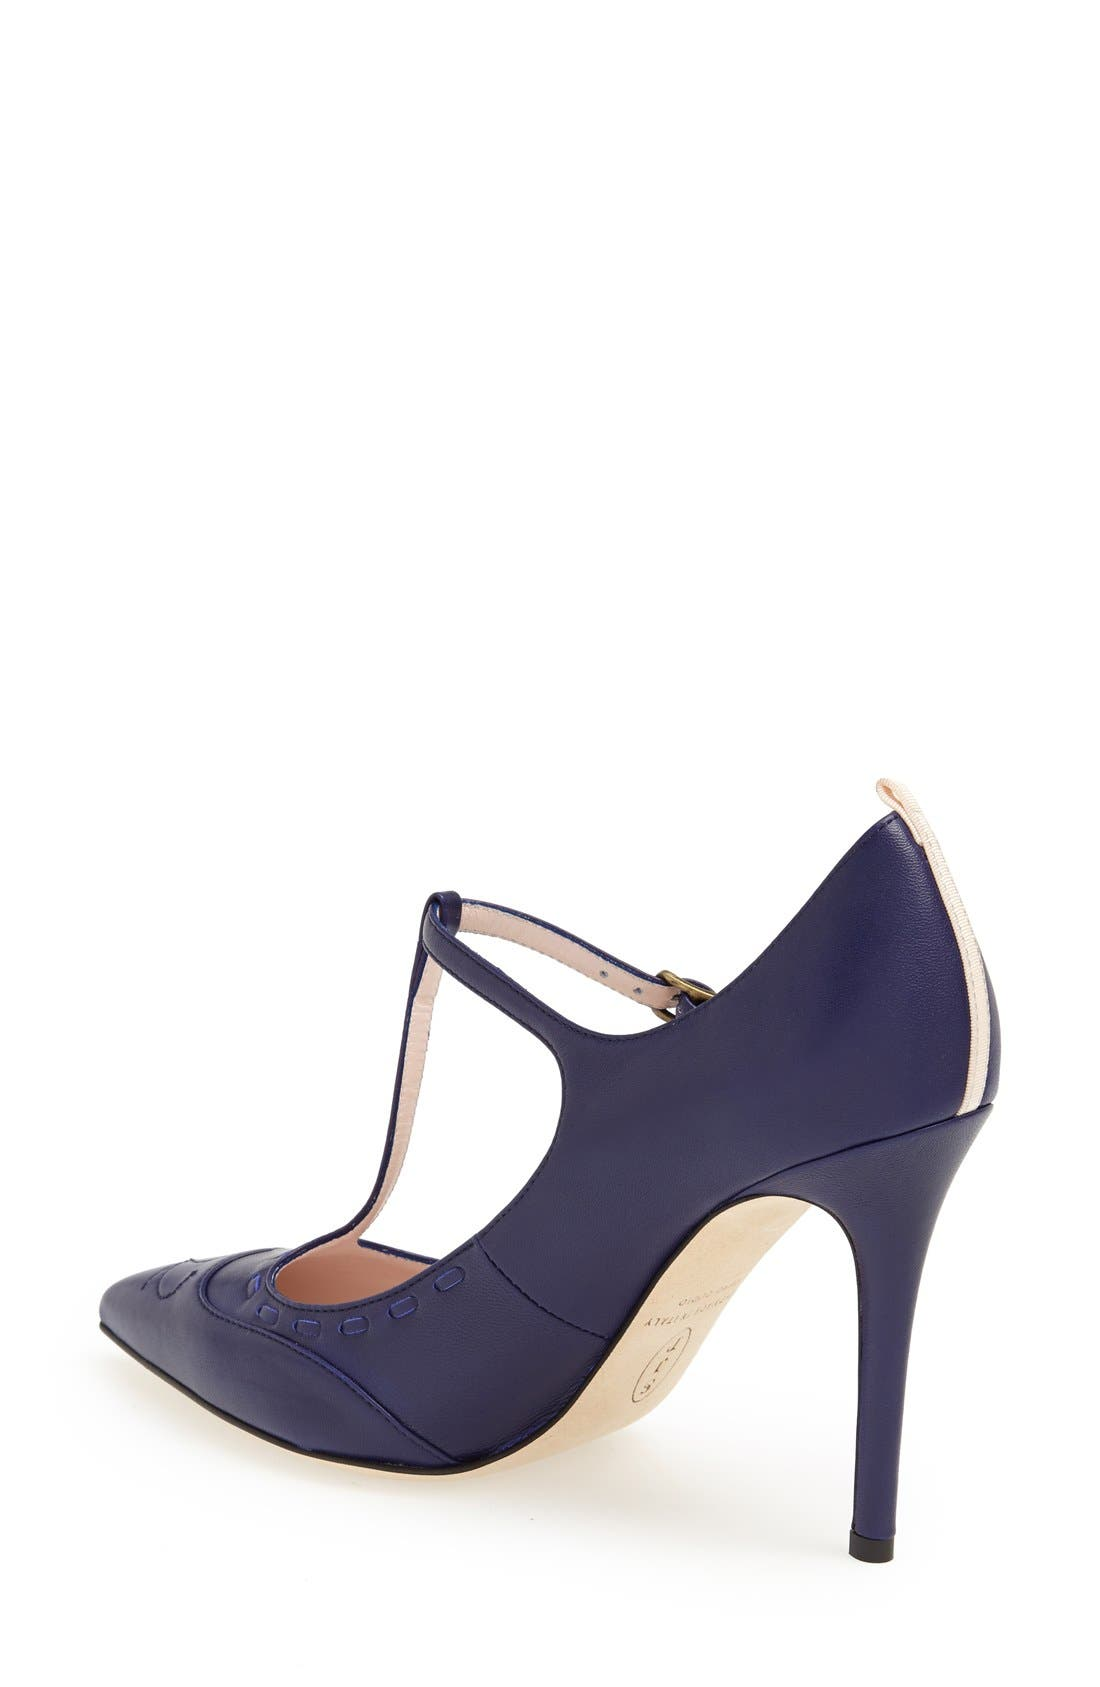 Alternate Image 2  - SJP 'Blythe' Leather T-Strap Mary Jane Pump (Women)